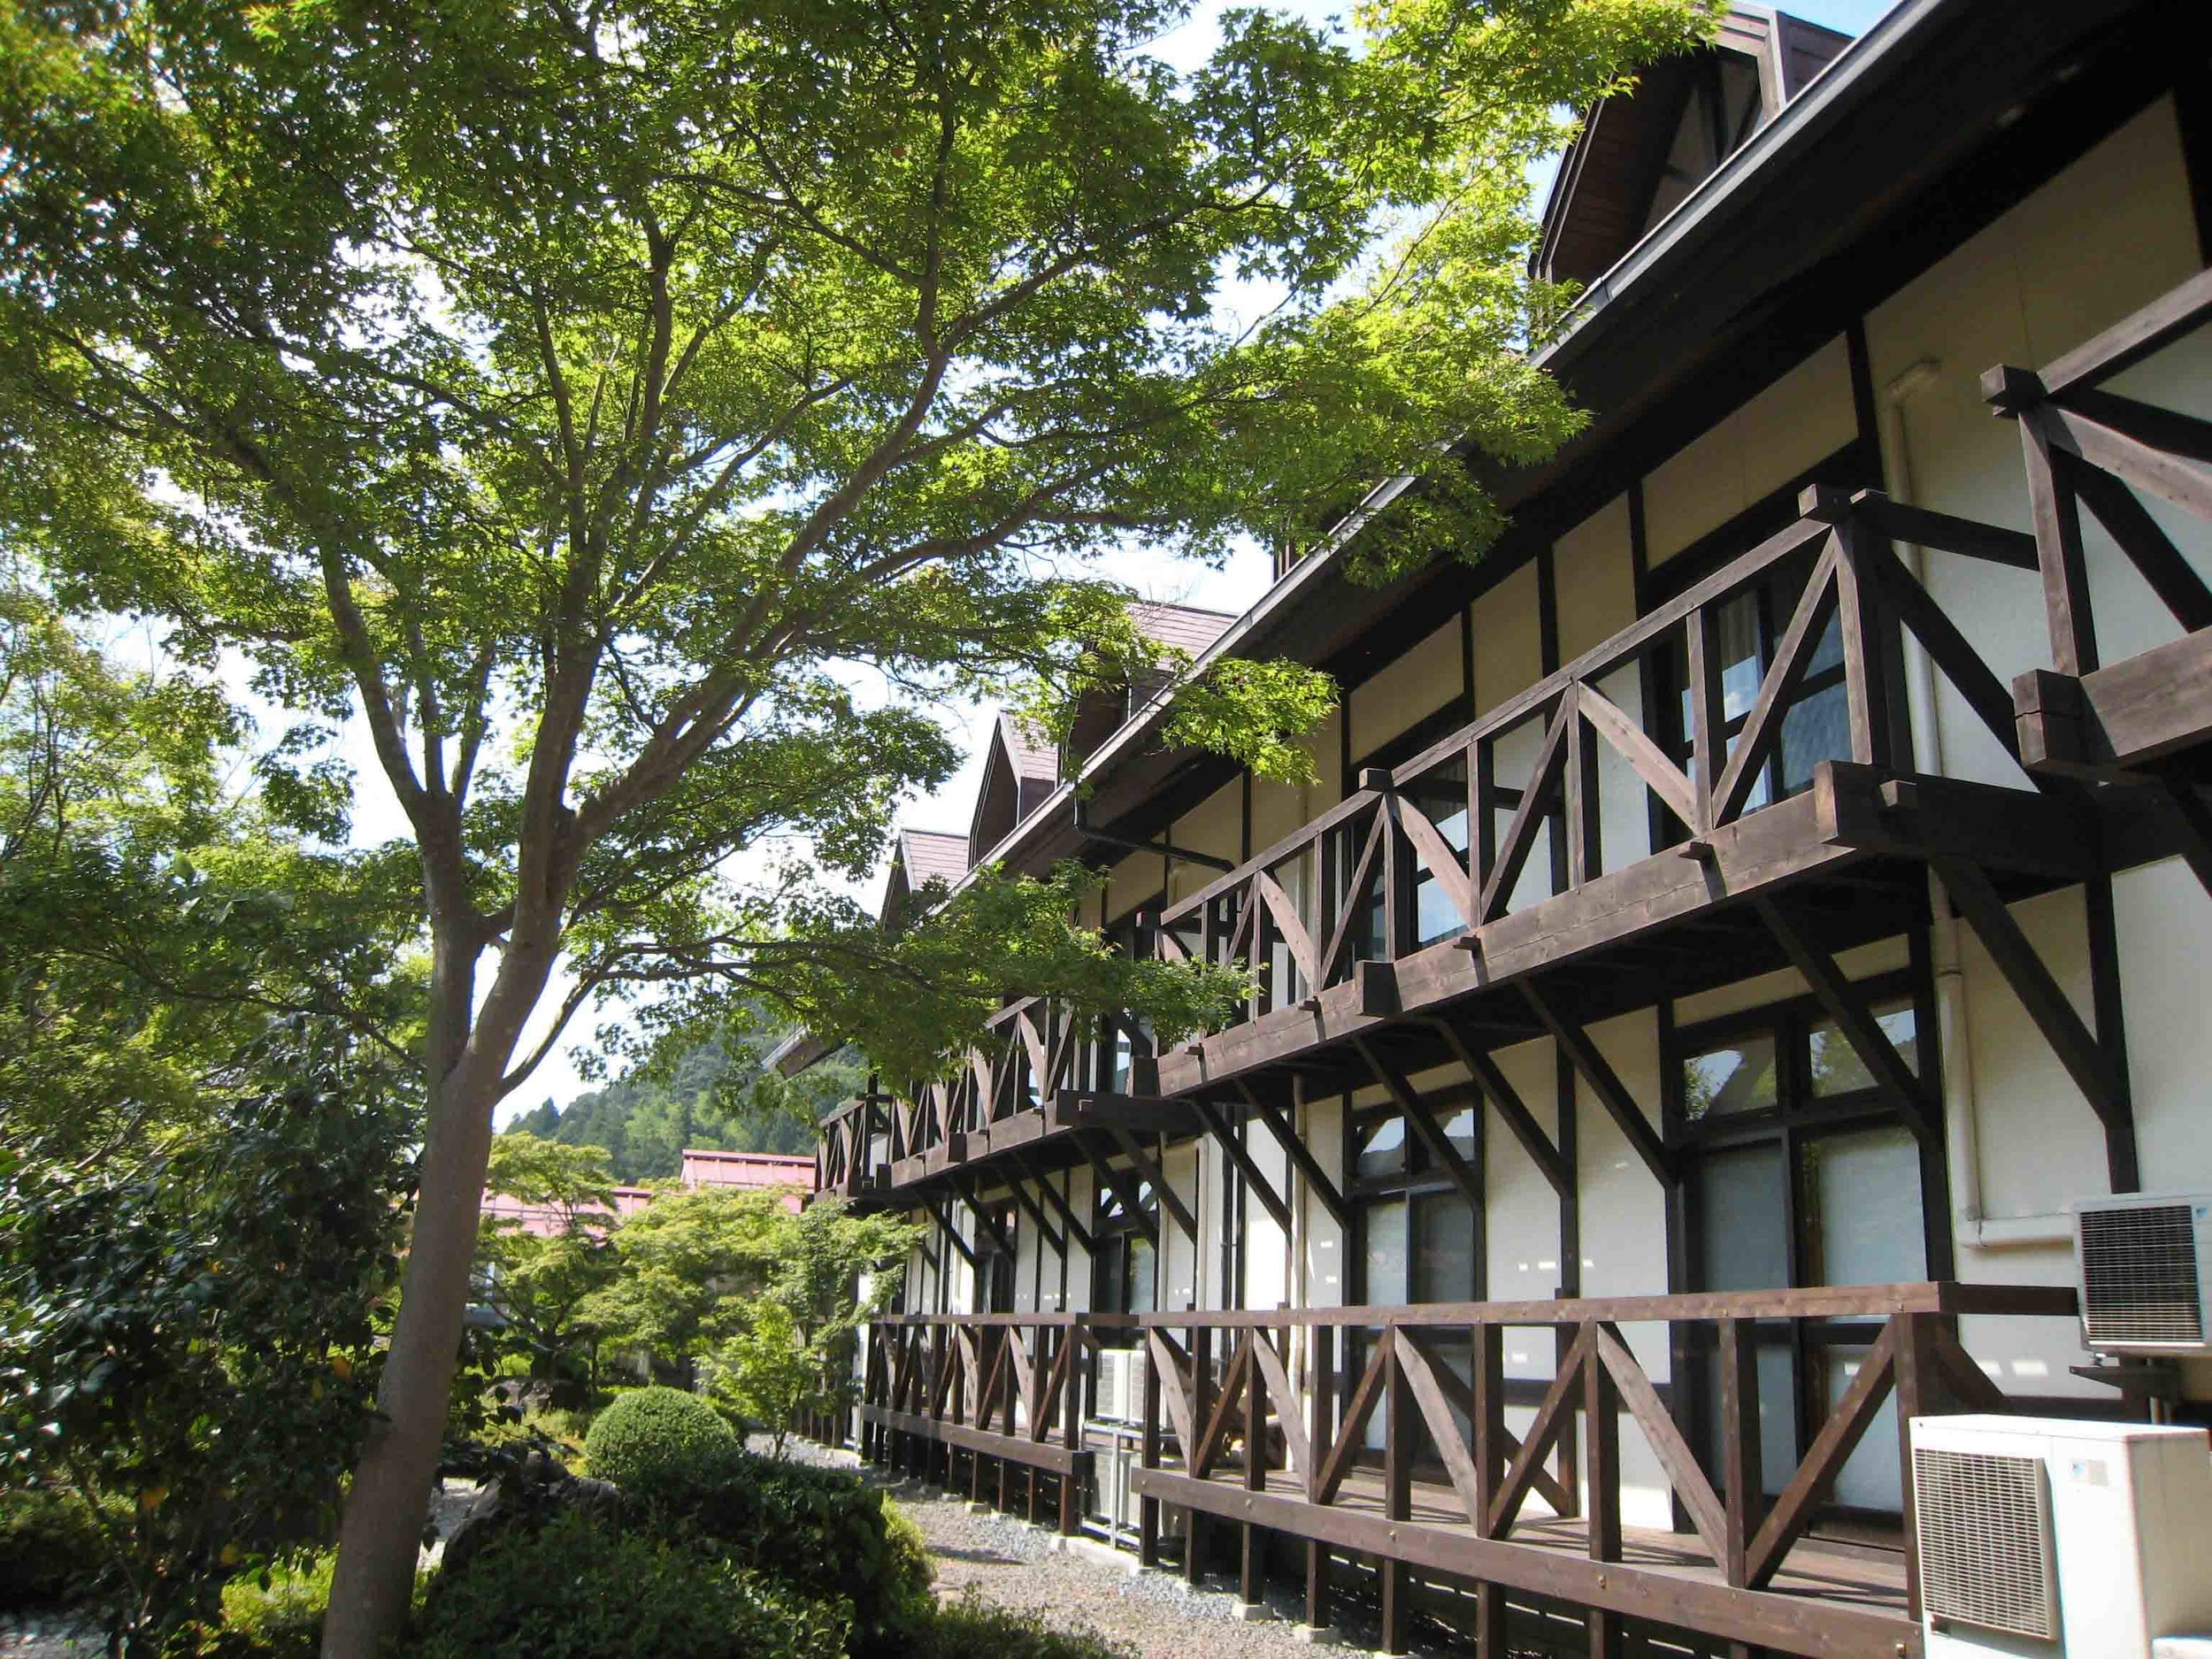 Hosenbo Lodge- a therapeutic onsen resort